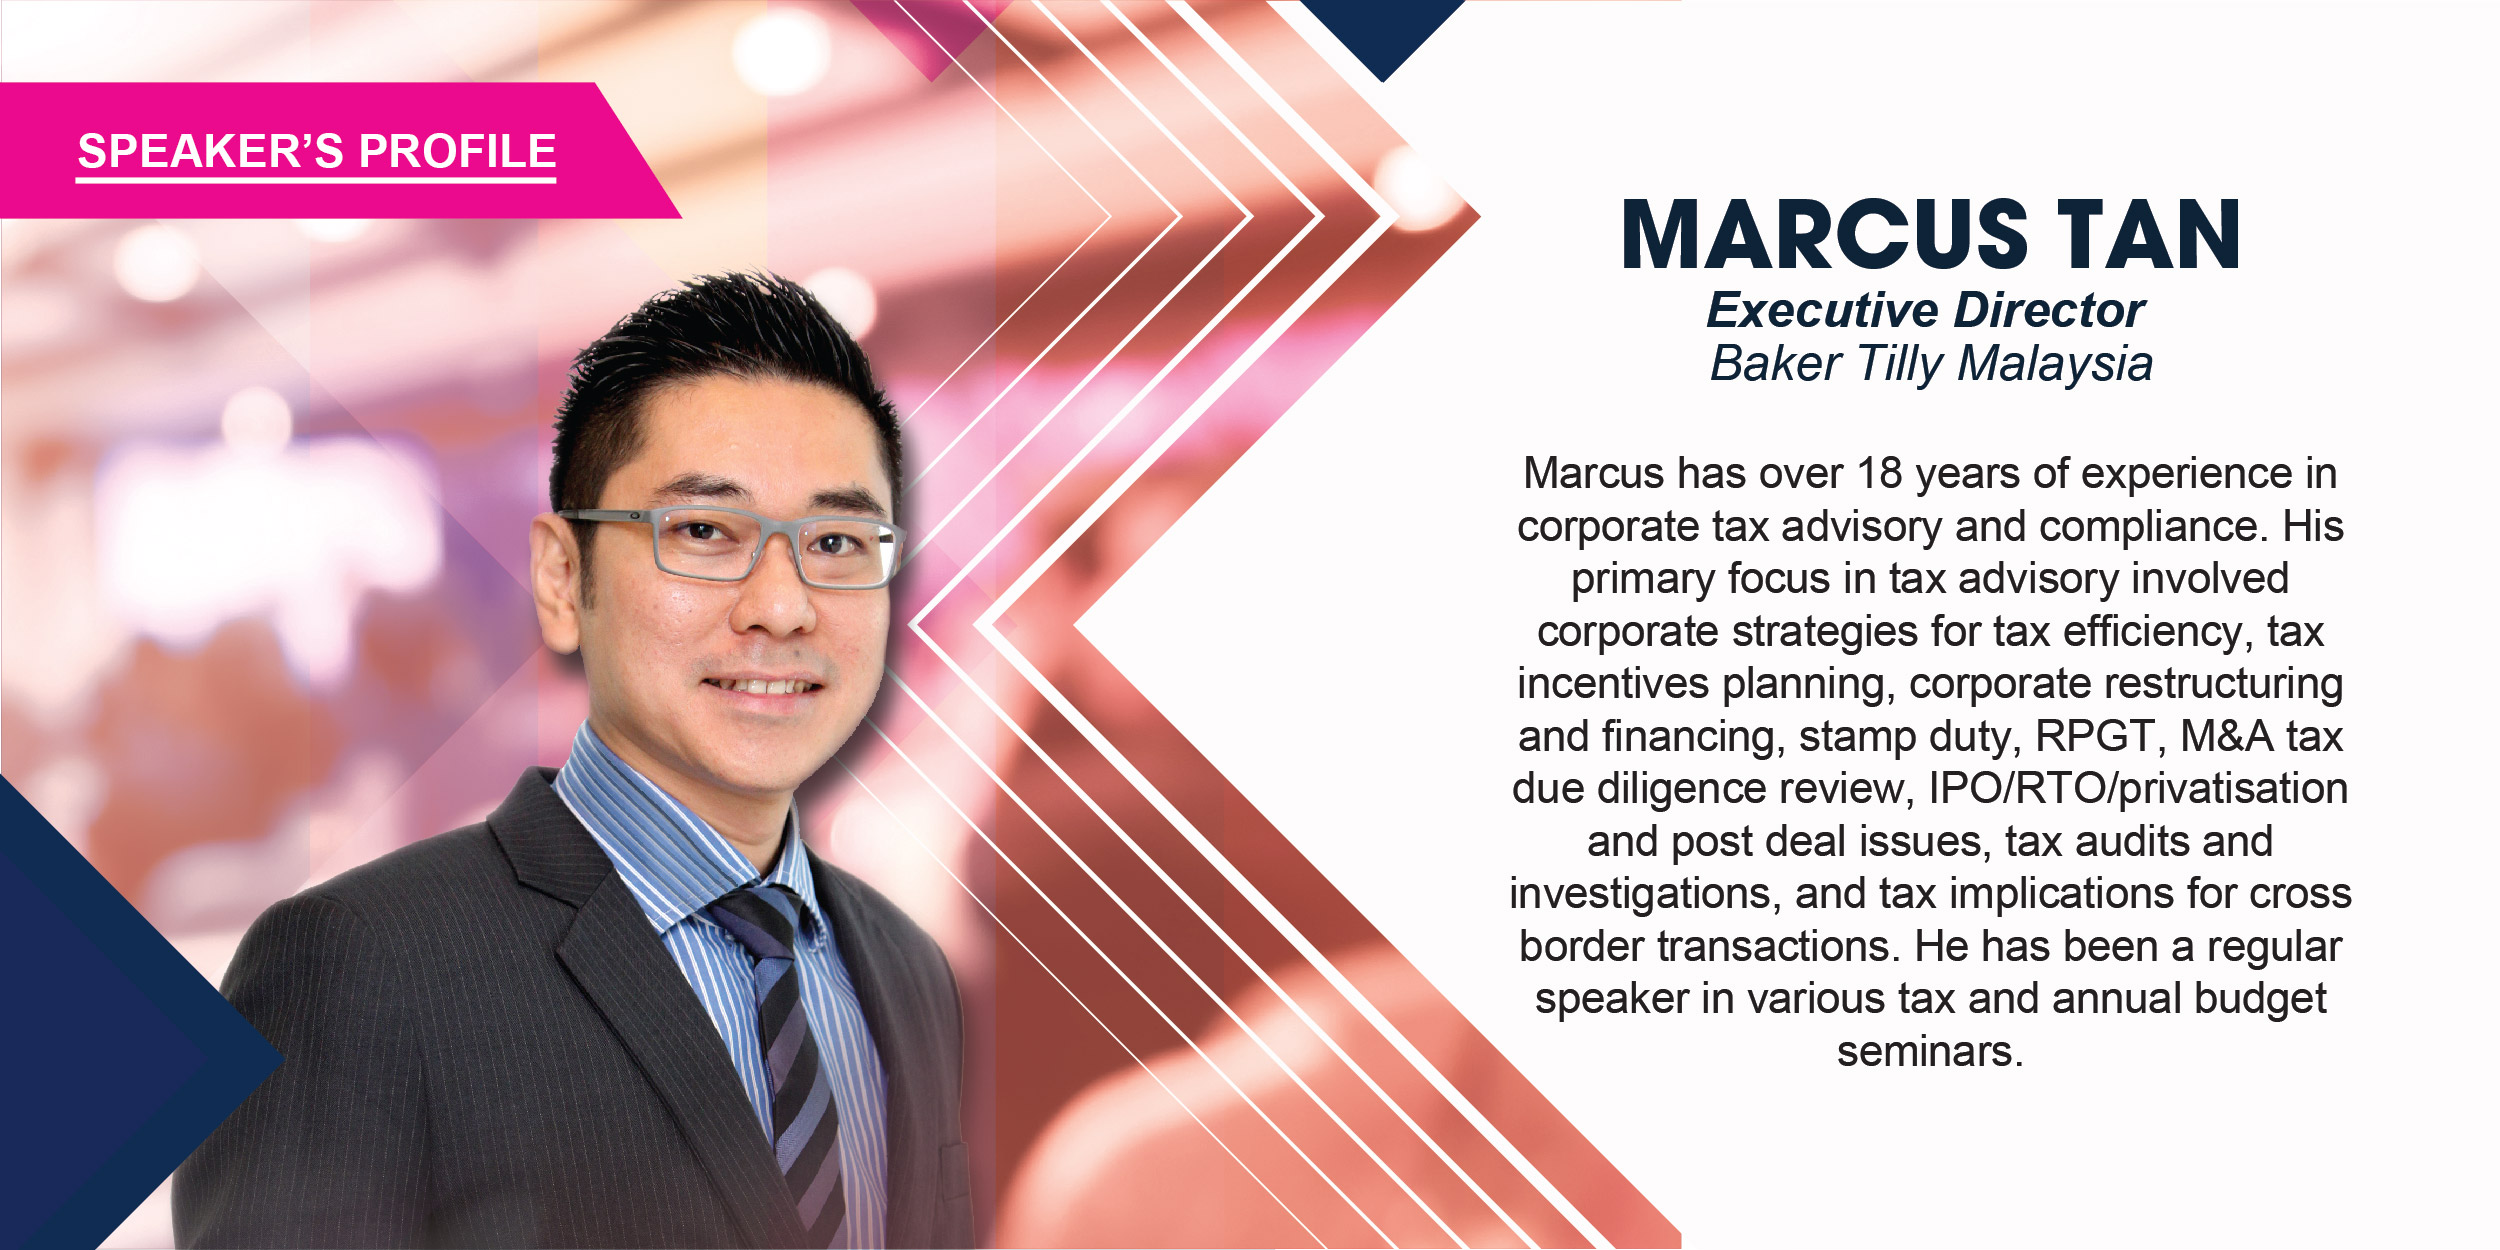 Marcus has over 18 years of experience in corporate tax advisory and compliance. His primary focus in tax advisory involved corporate strategies for tax efficiency, tax incentives planning, corporate restructuring & financing, stamp duty, RPGT, M&A tax due diligence review, IPO/RTO/privatisation and post deal issues, tax audits & investigations, and tax implications for cross border transactions. He has been a regular speaker in various tax and annual budget seminars.